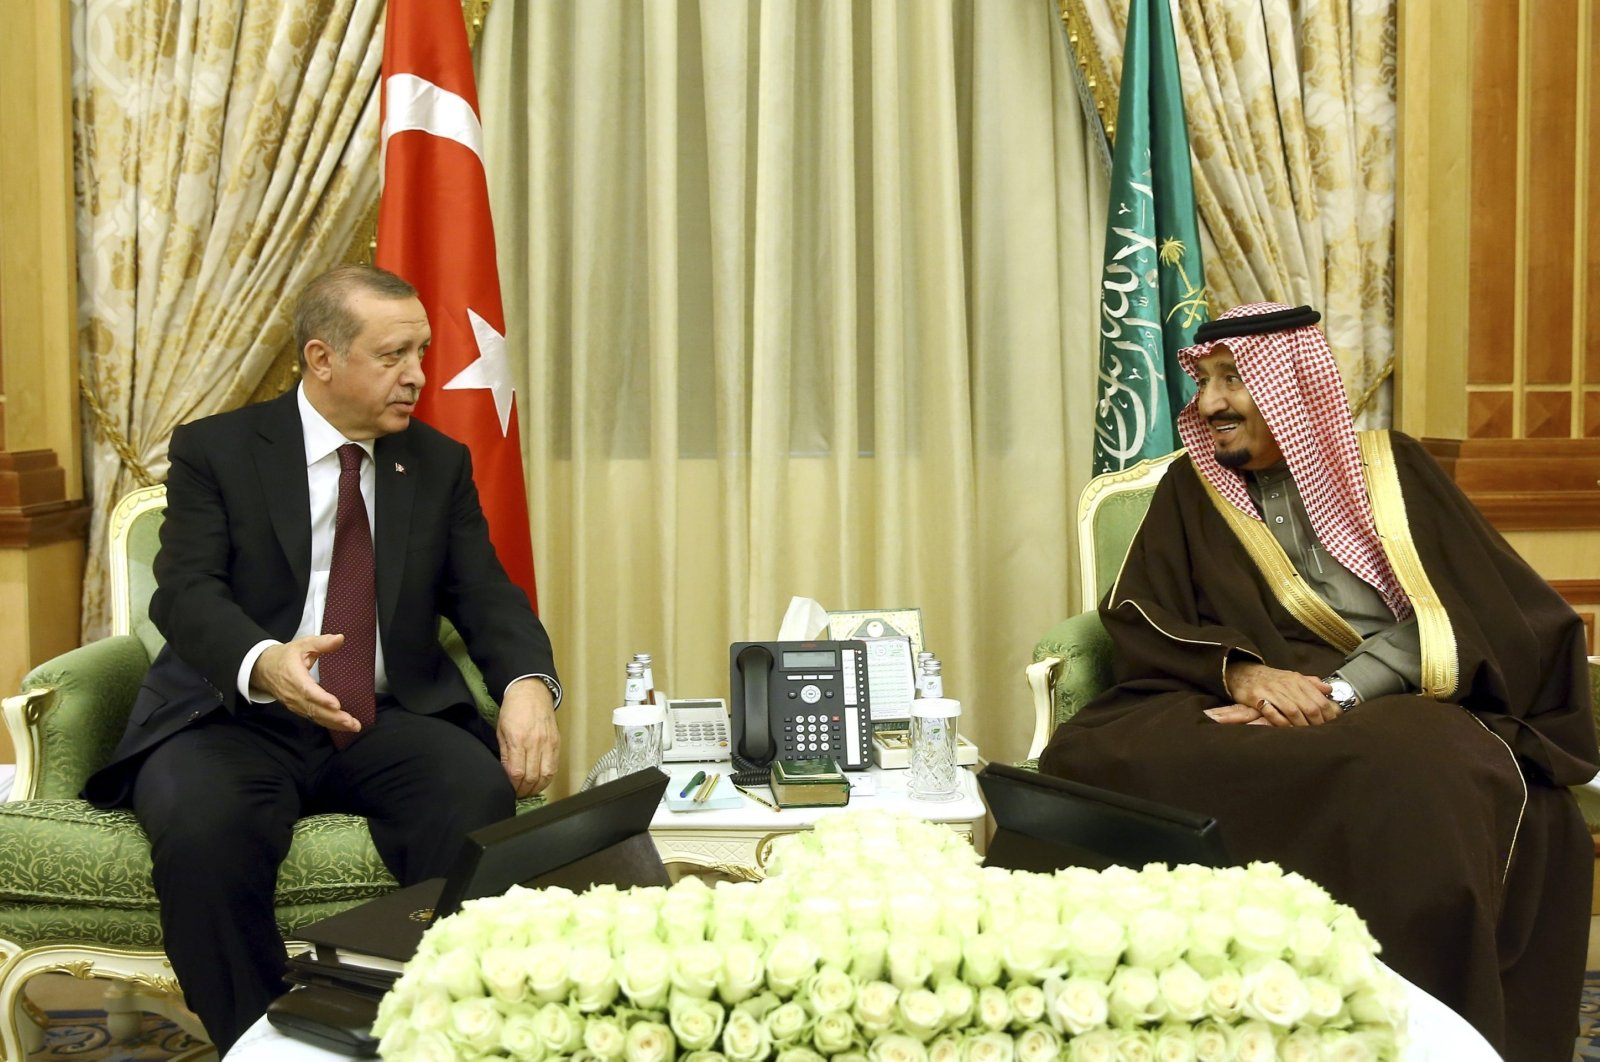 President Recep Tayyip Erdoğan (L) meets with Saudi King Salman in Riyadh, Saudi Arabia, Feb. 14, 2017. (Reuters File Photo)